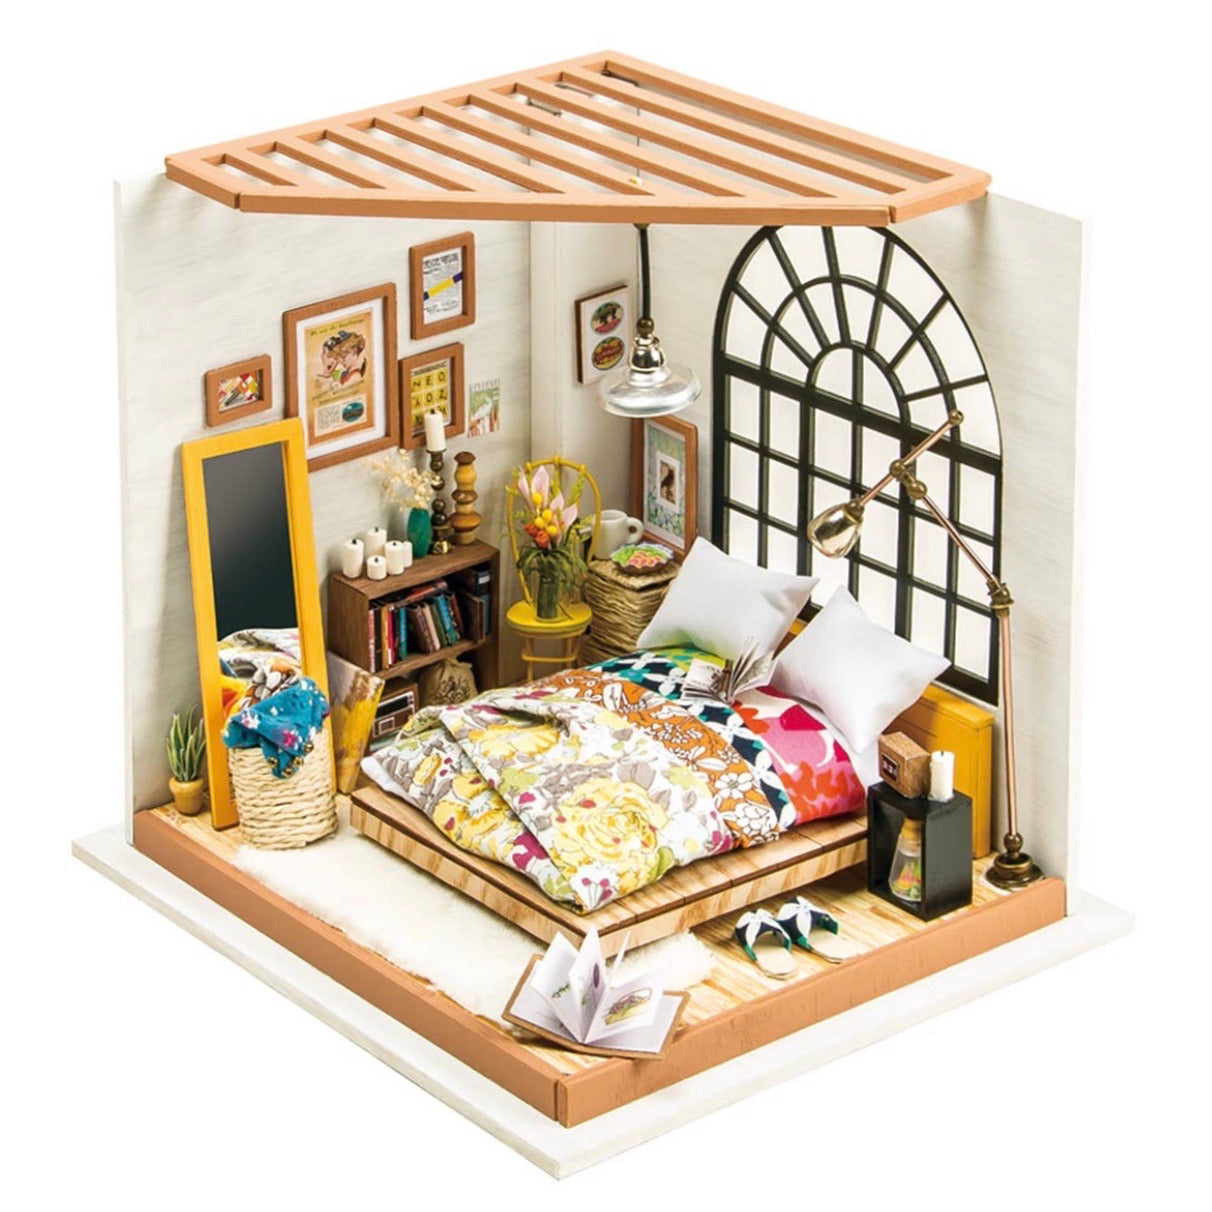 Alice's Dreamy Bedroom DIY Dollhouse Room Kit